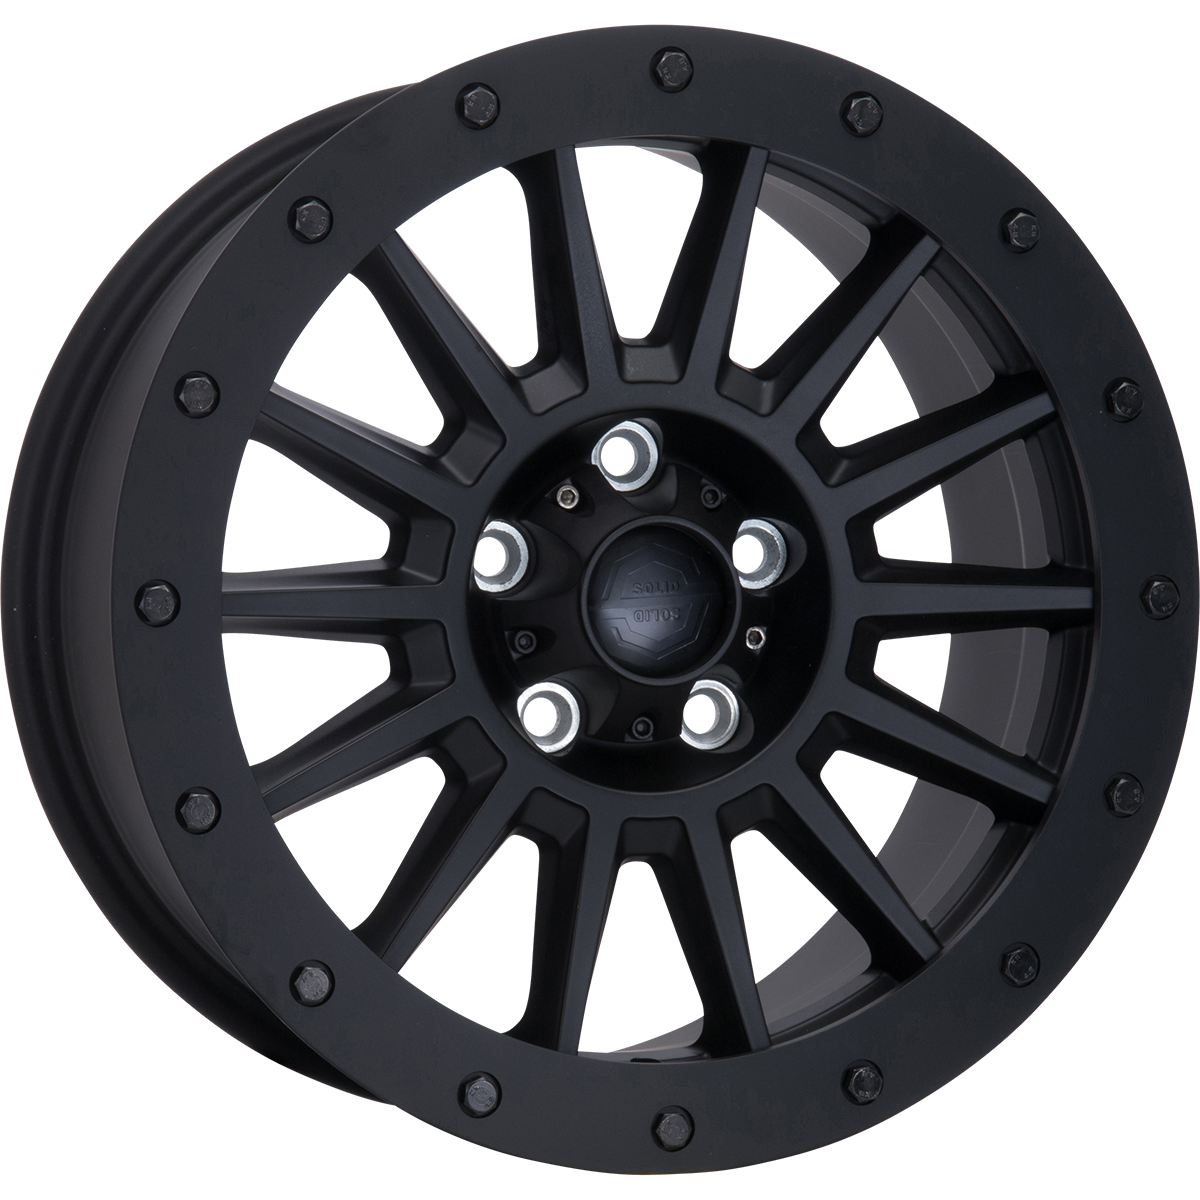 <br>size:16x7.0 114.3/5H +40<br>wheel color:SOLID BLACK<br>ring color:SOLID BLACK<br>note:アルミリング付<br>note:ブラックボルト<br>